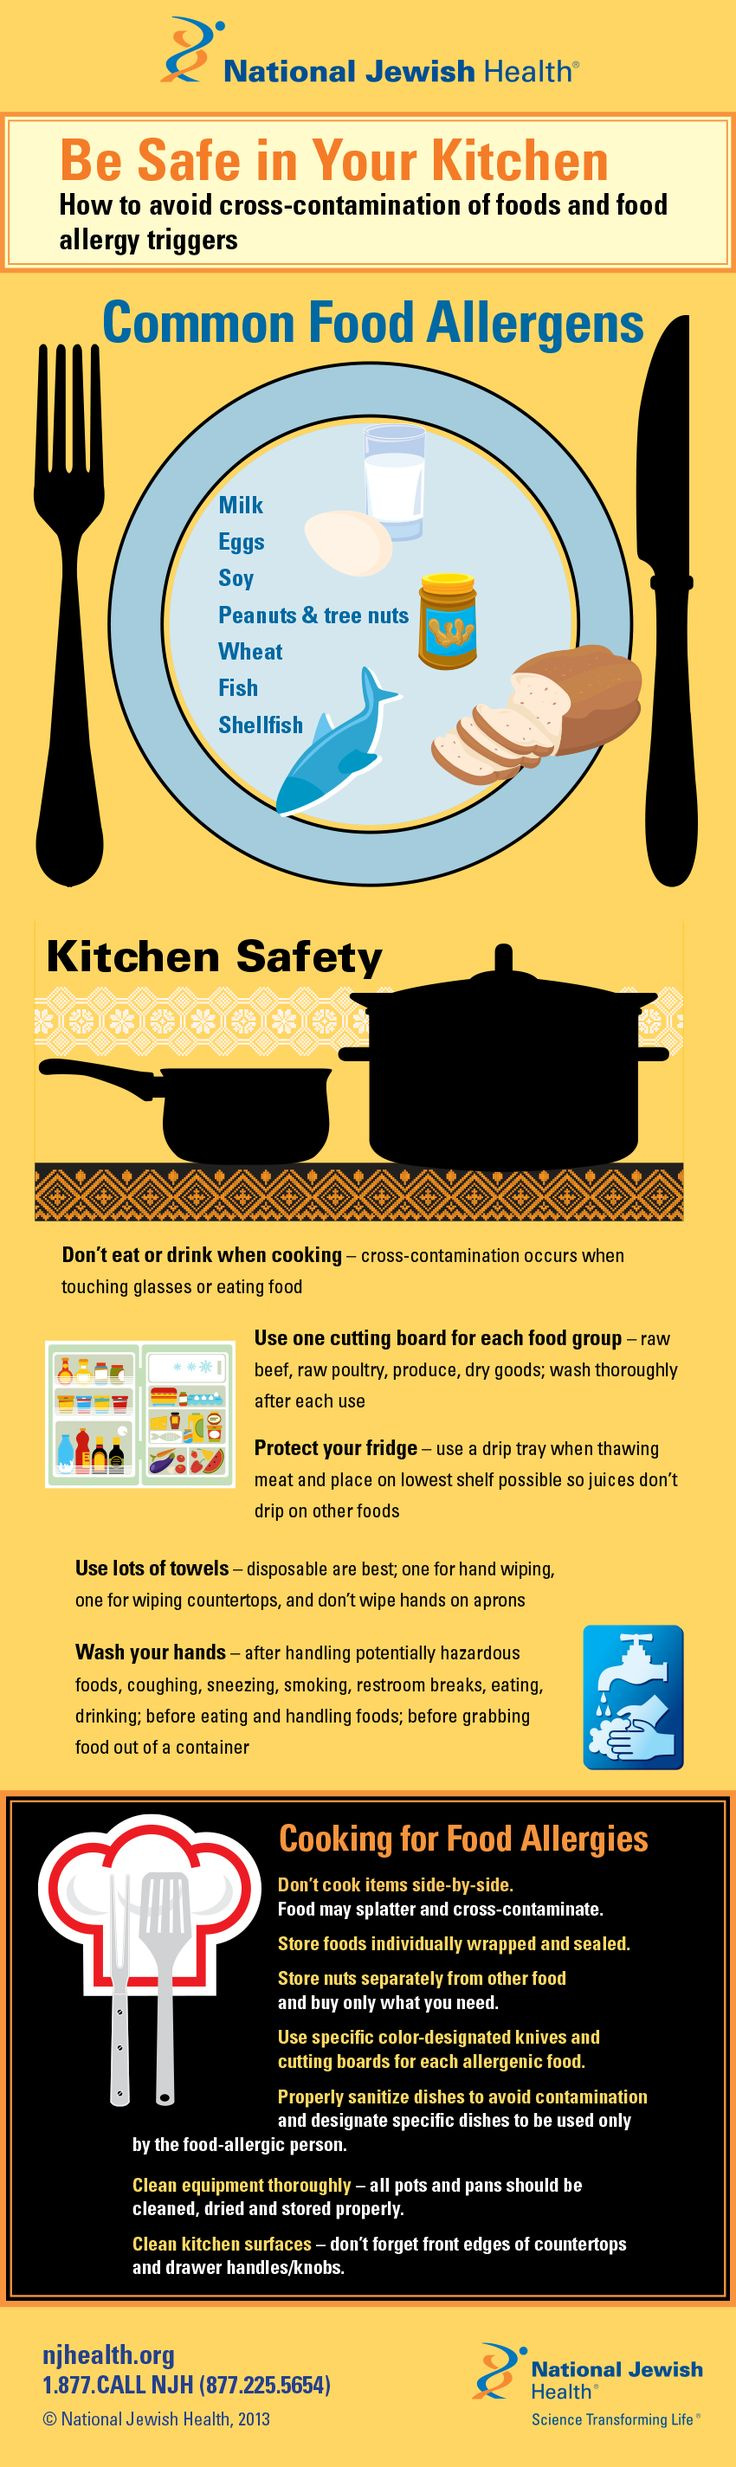 Workbooks kitchen safety worksheets : 20 best Kitchen Safety images on Pinterest | Cook, Cooking tips ...